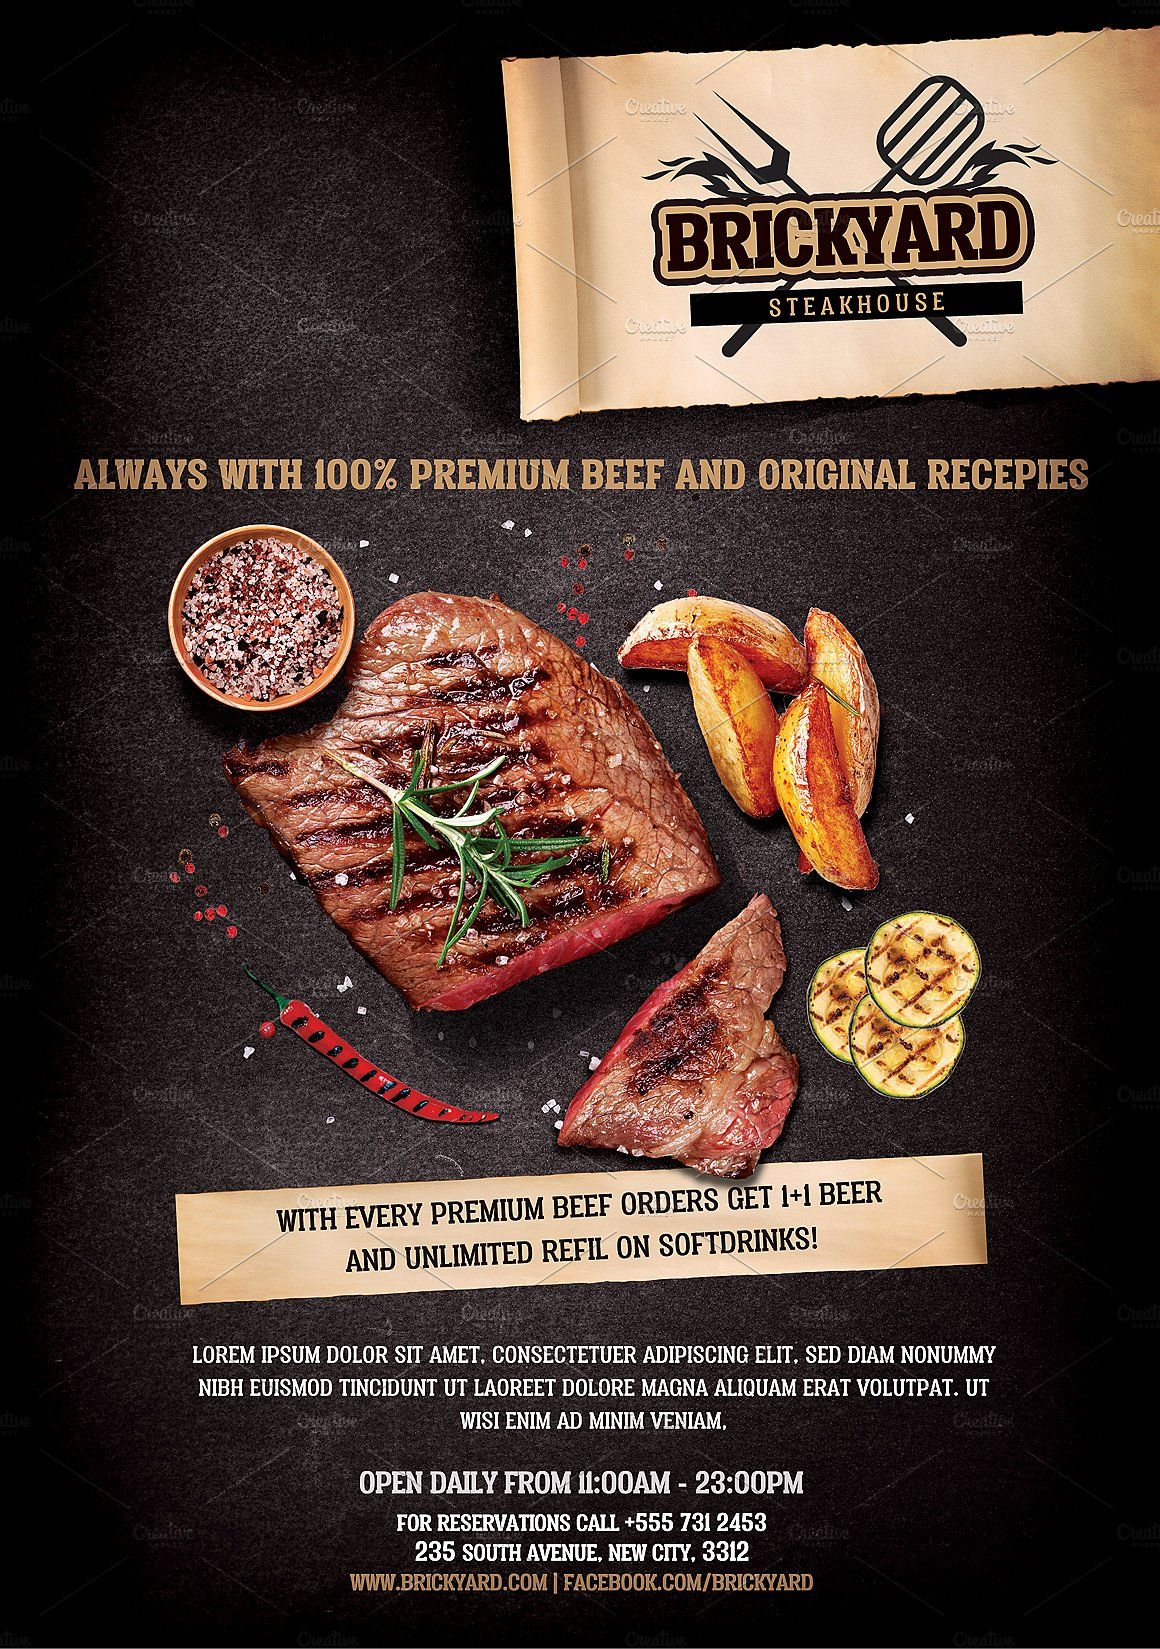 Steak House Flyer Template by Hotpin on @creativemarket # ...